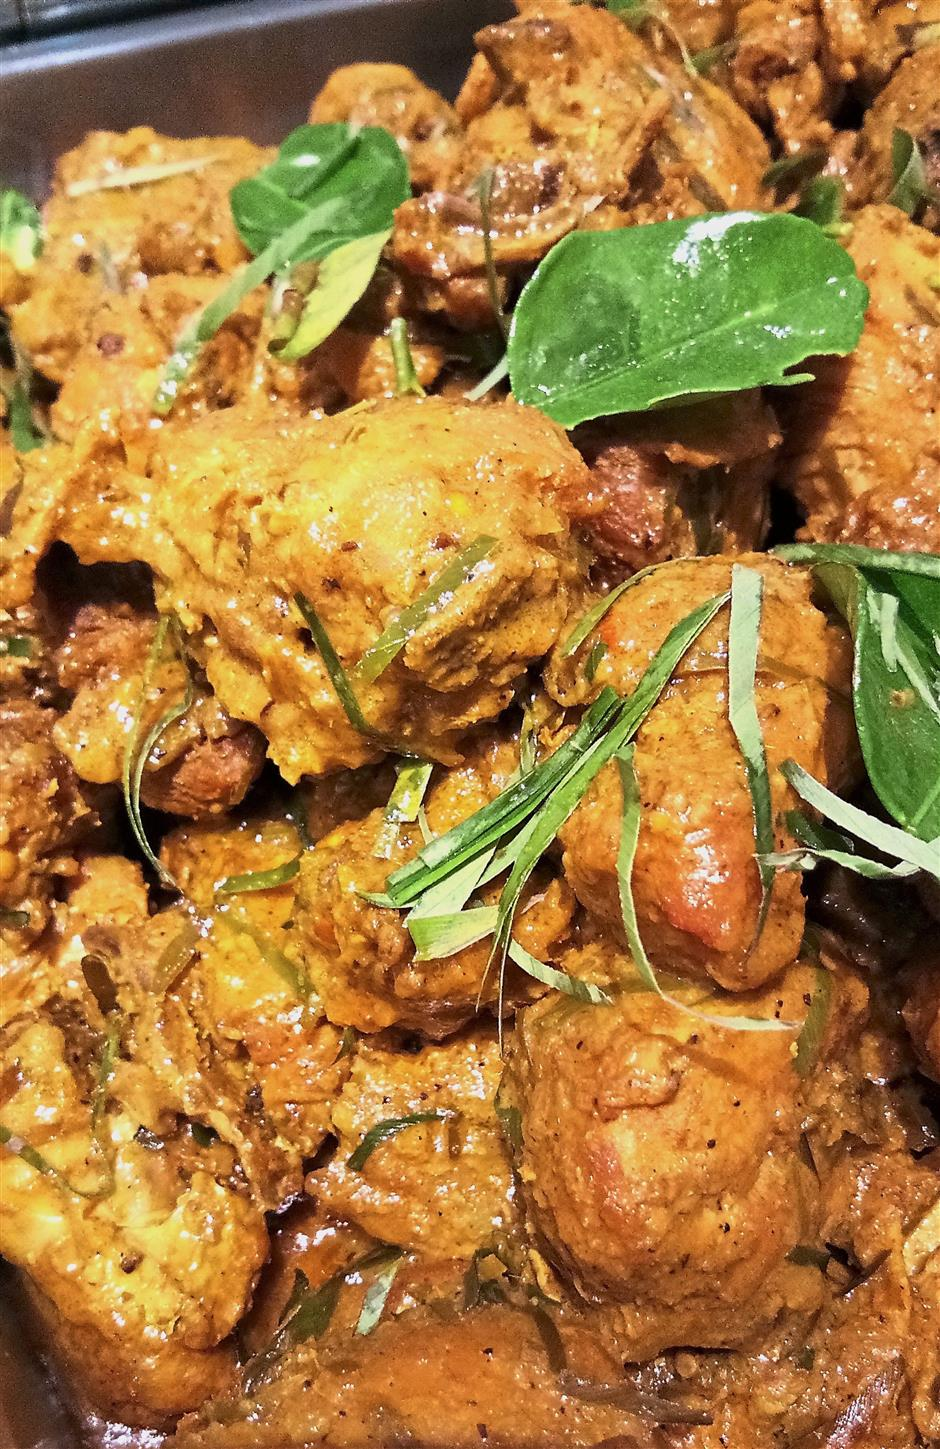 Norashikeen's Minang-style chicken rendang is a family recipe.